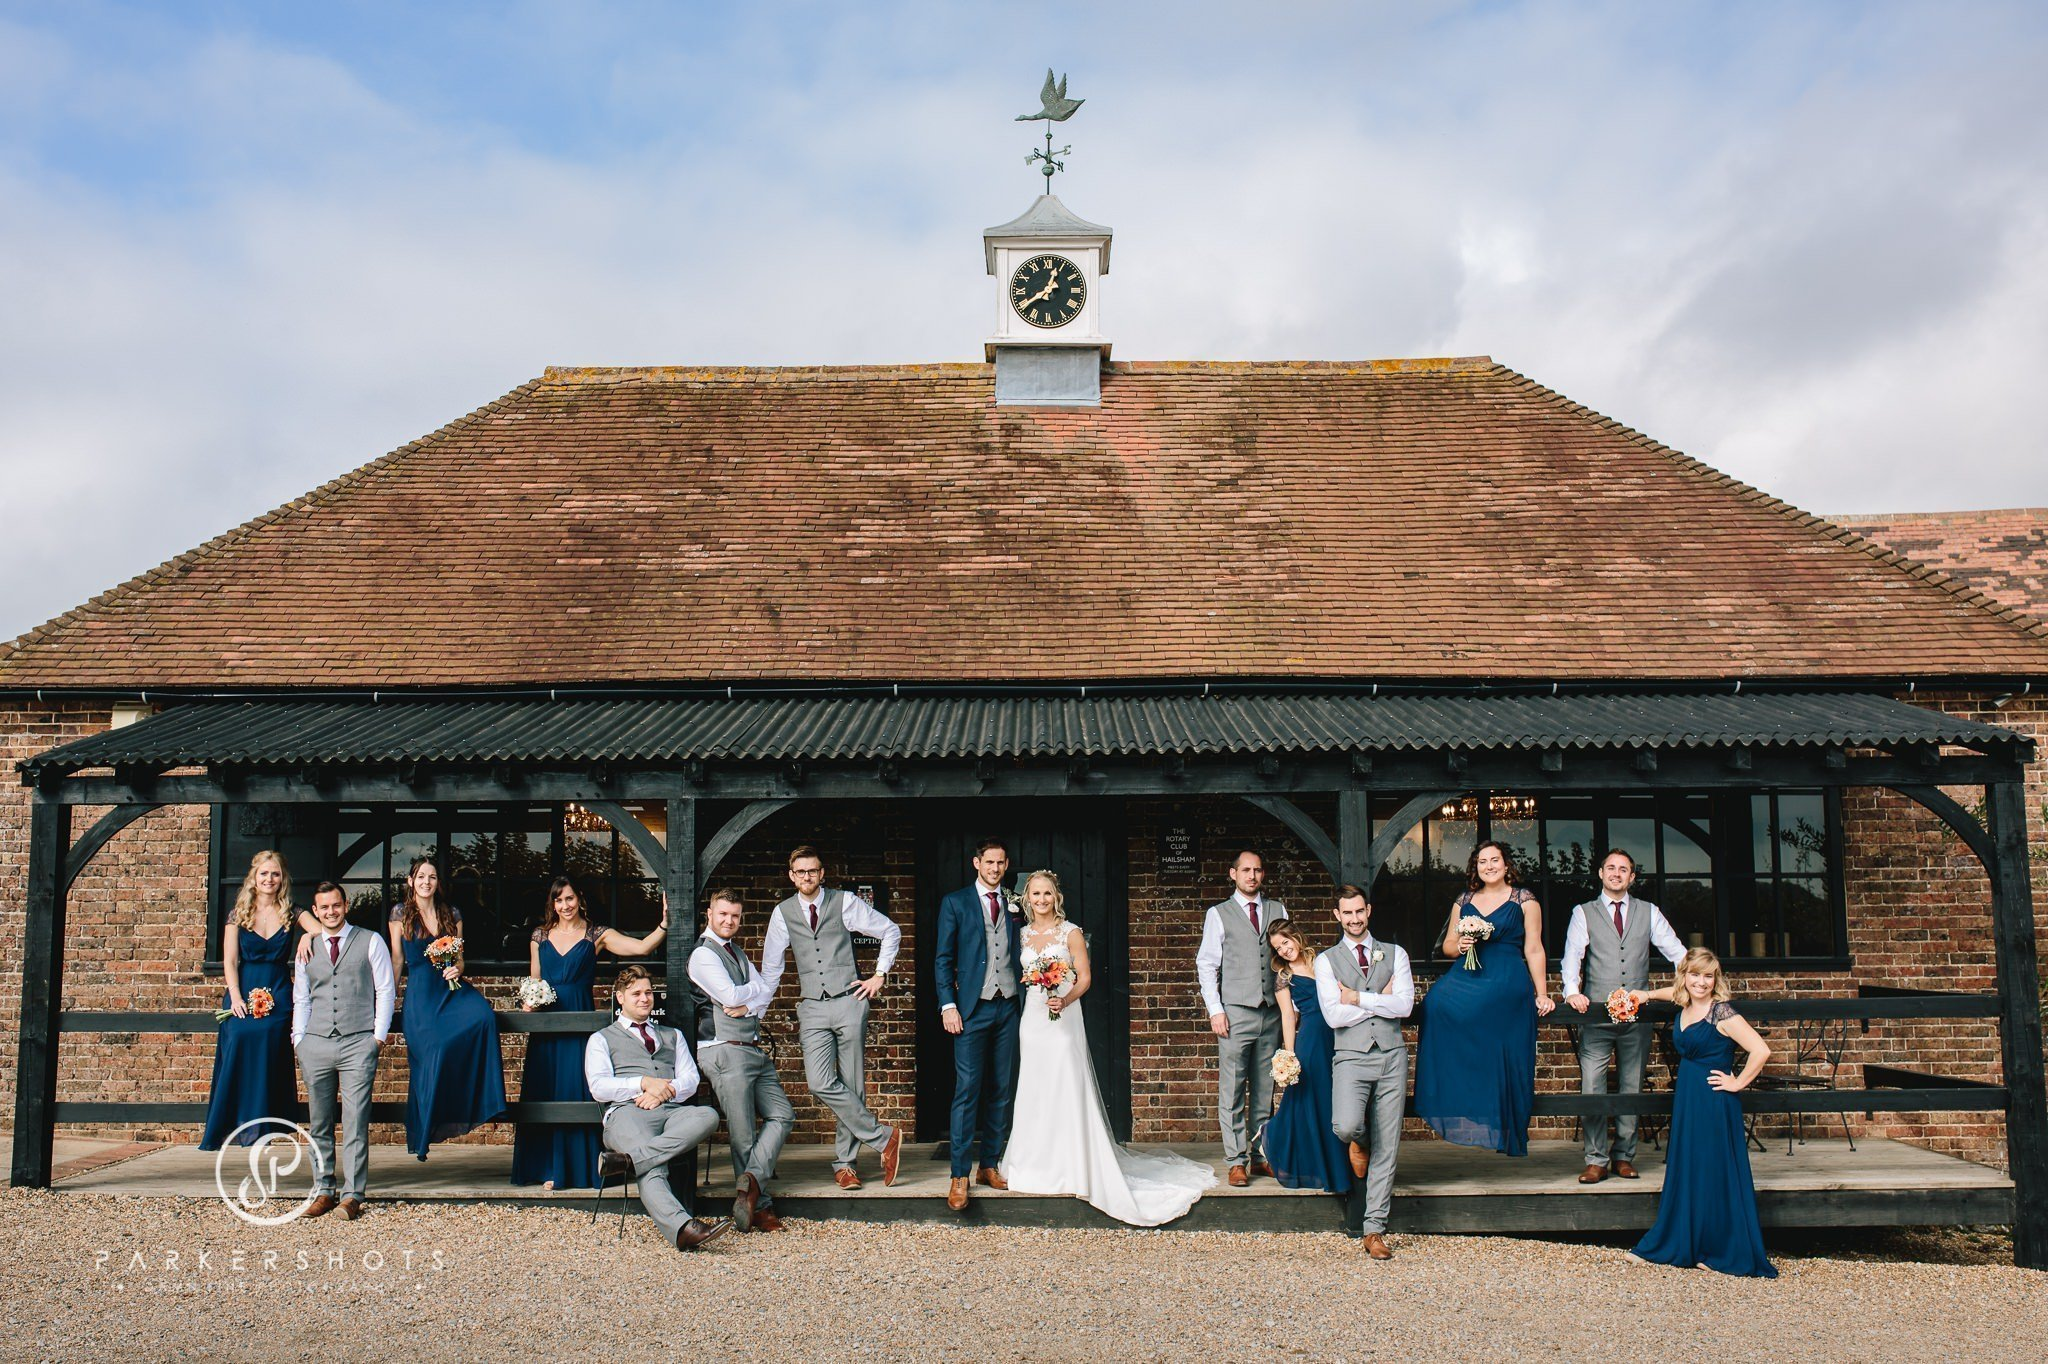 Wedding party at Blackstock Country Estate